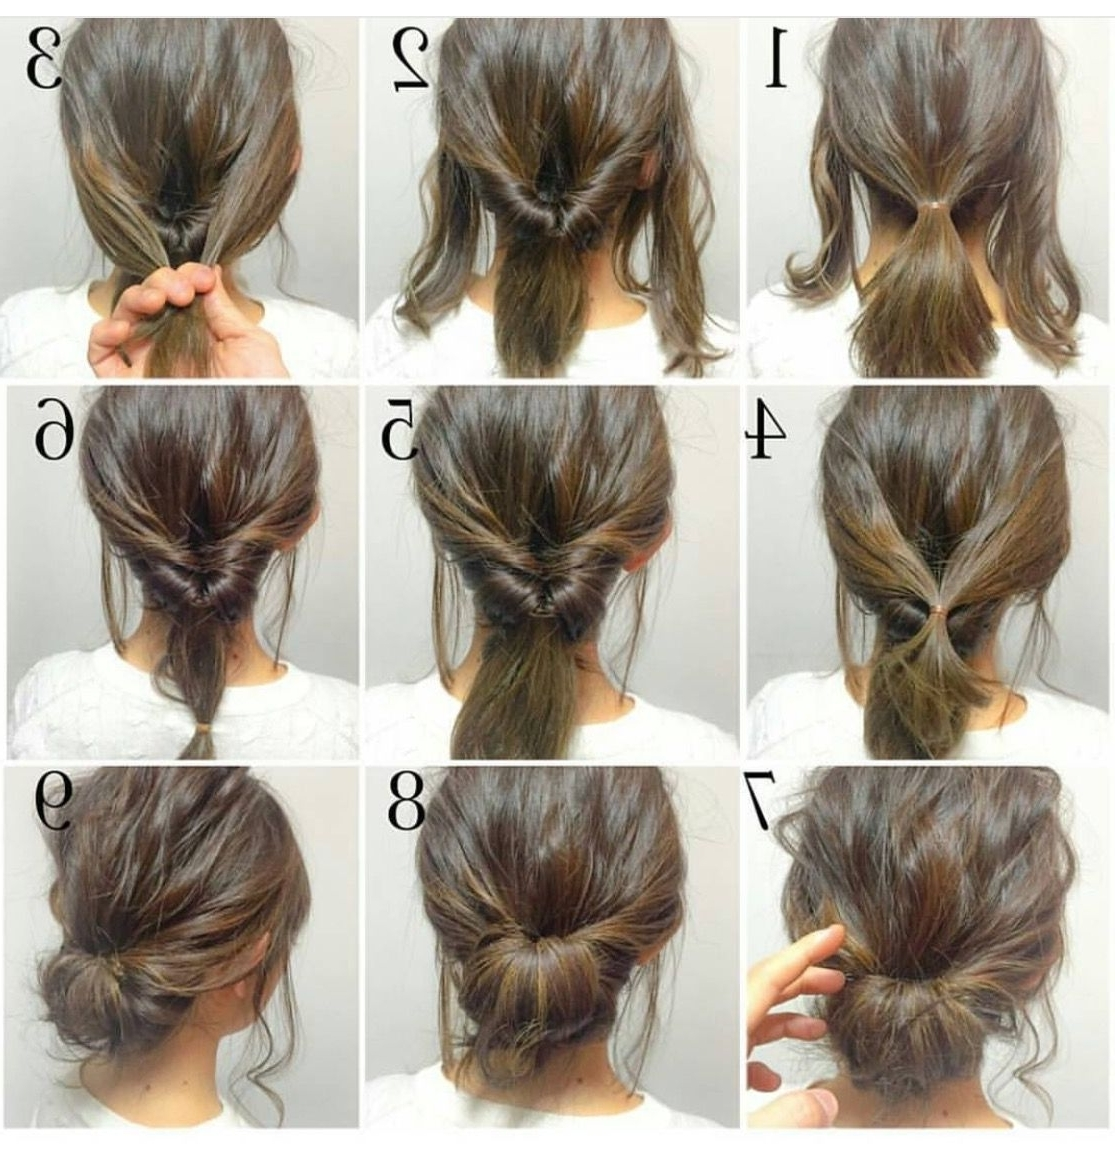 Morning Hair, Easy And Intended For Fashionable Easy Wedding Hairstyles For Bridesmaids (View 9 of 15)